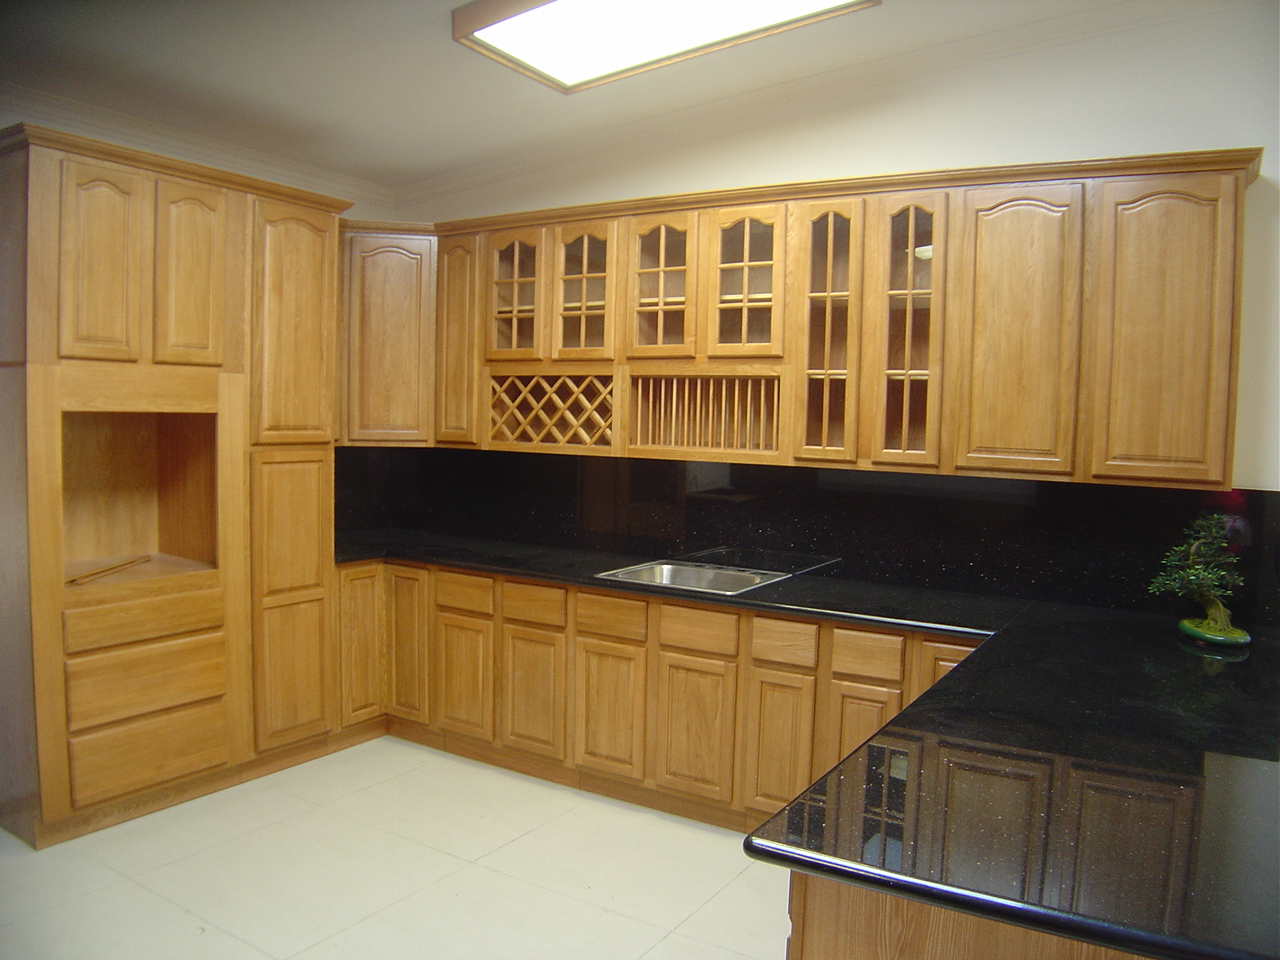 Oak kitchen cabinets for your interior kitchen minimalist for Kitchen pictures with oak cabinets